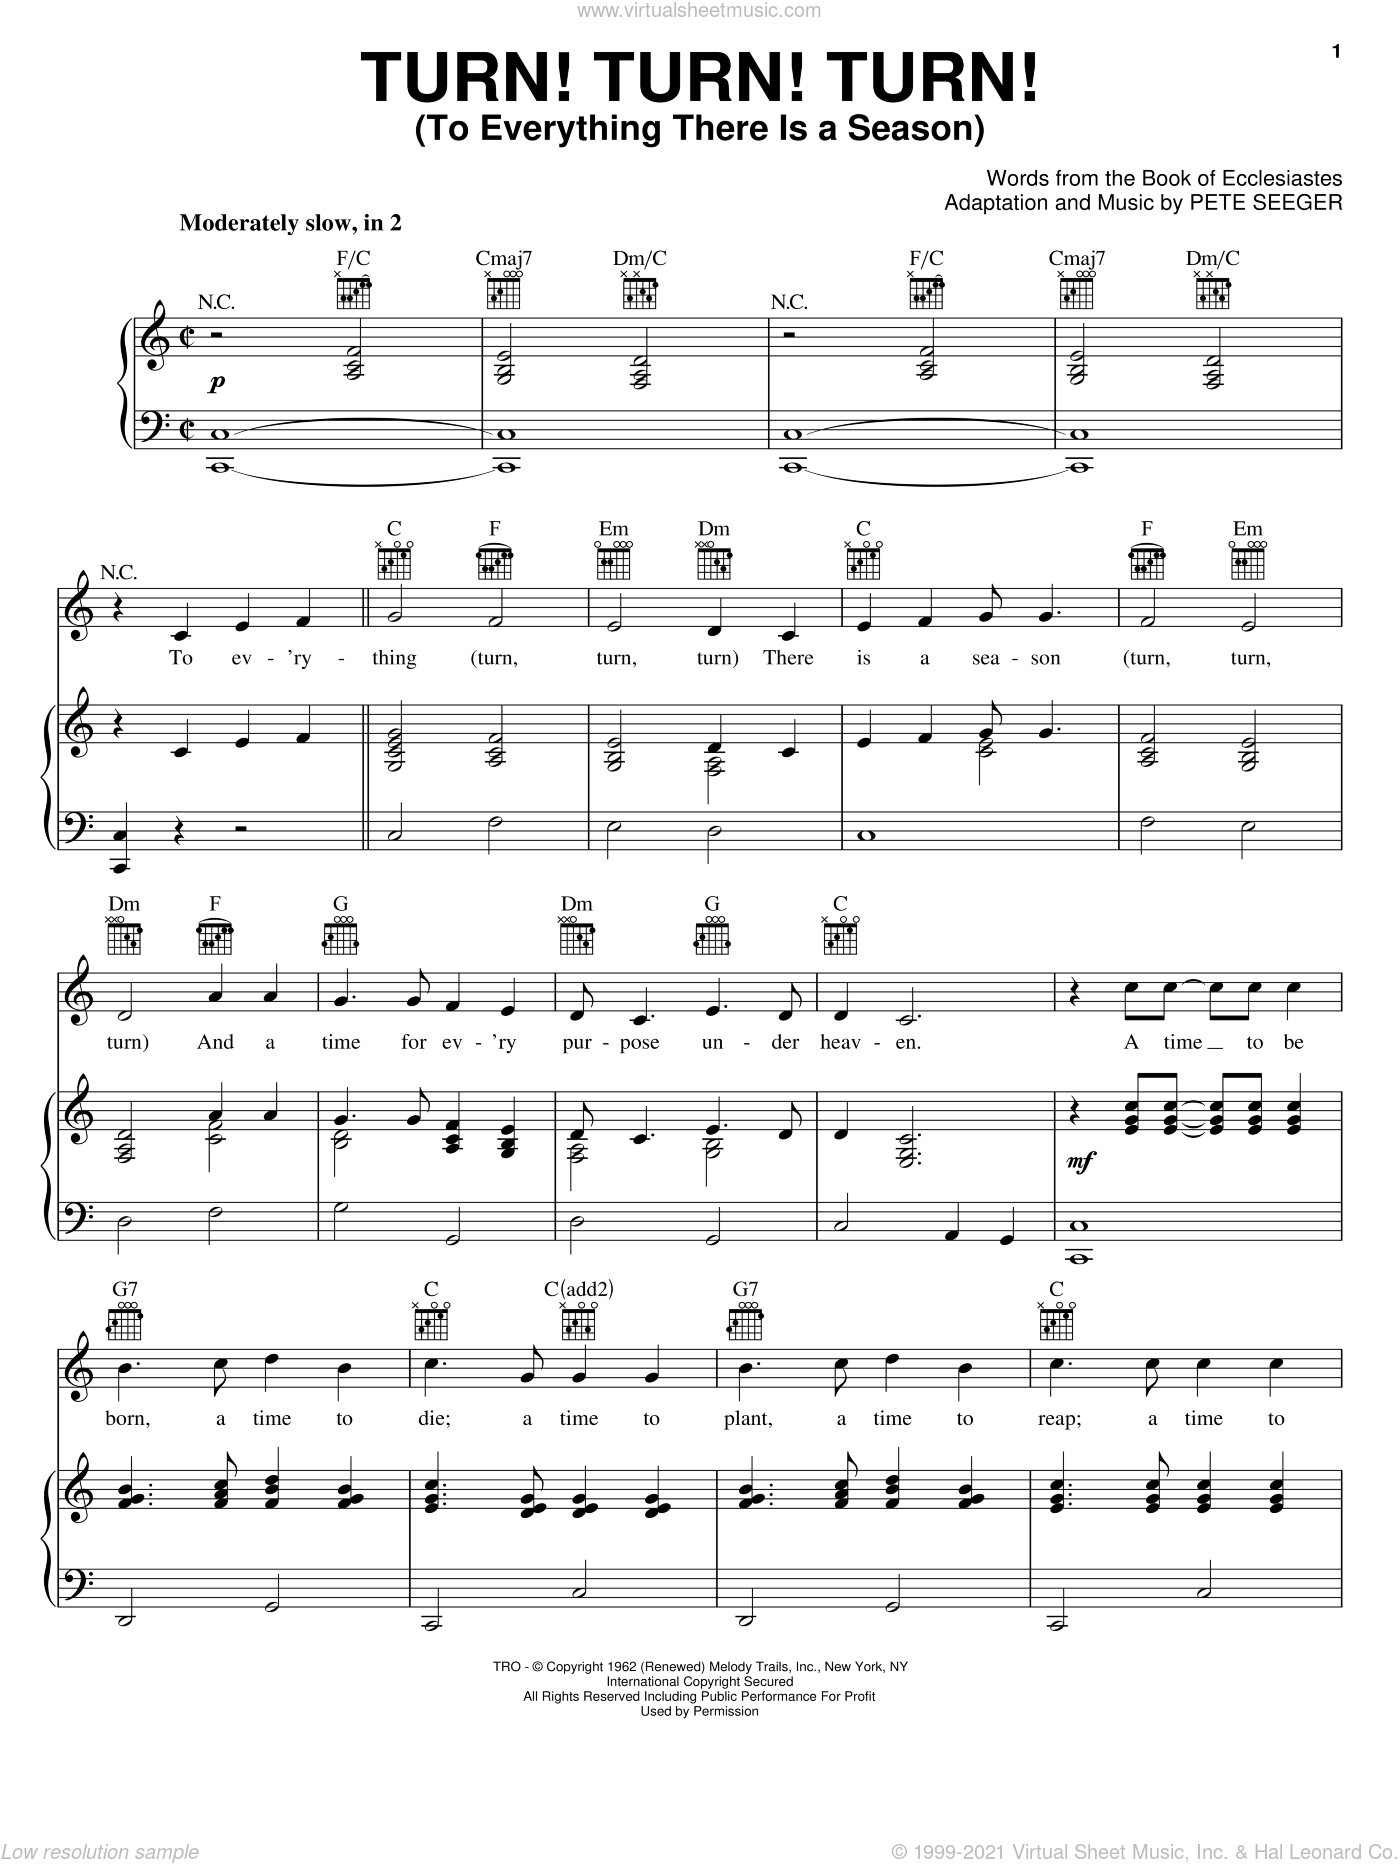 Turn! Turn! Turn! (To Everything There Is A Season) sheet music for voice, piano or guitar by The Byrds, Book of Ecclesiastes and Pete Seeger, intermediate skill level